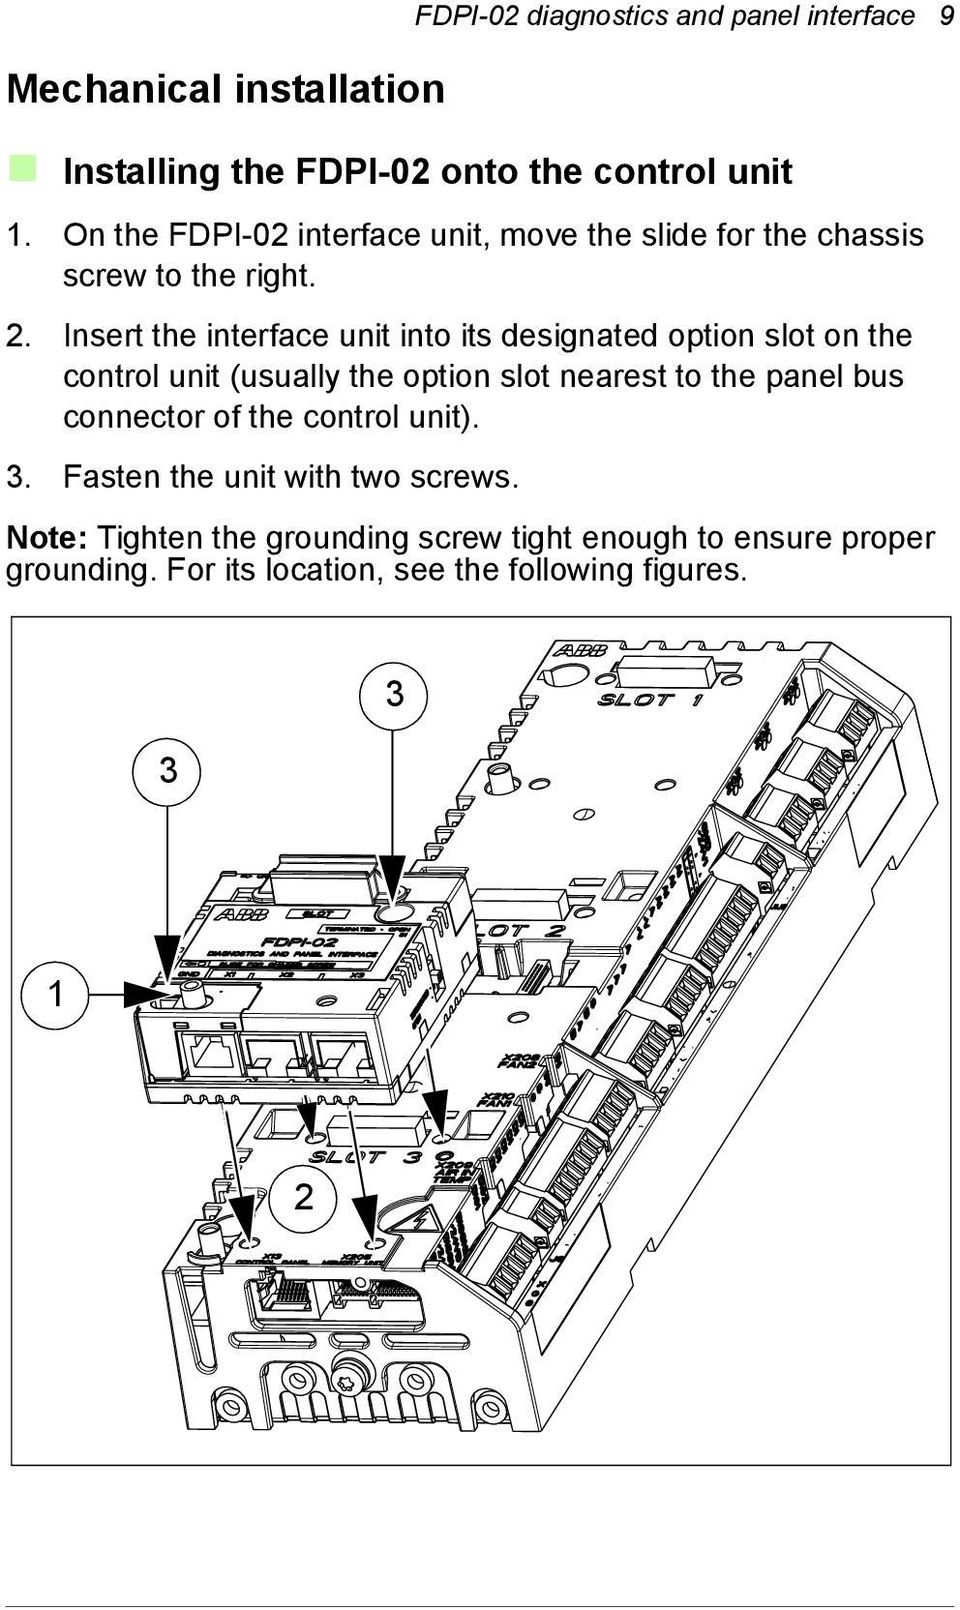 Insert the interface unit into its designated option slot on the control unit (usually the option slot nearest to the panel bus